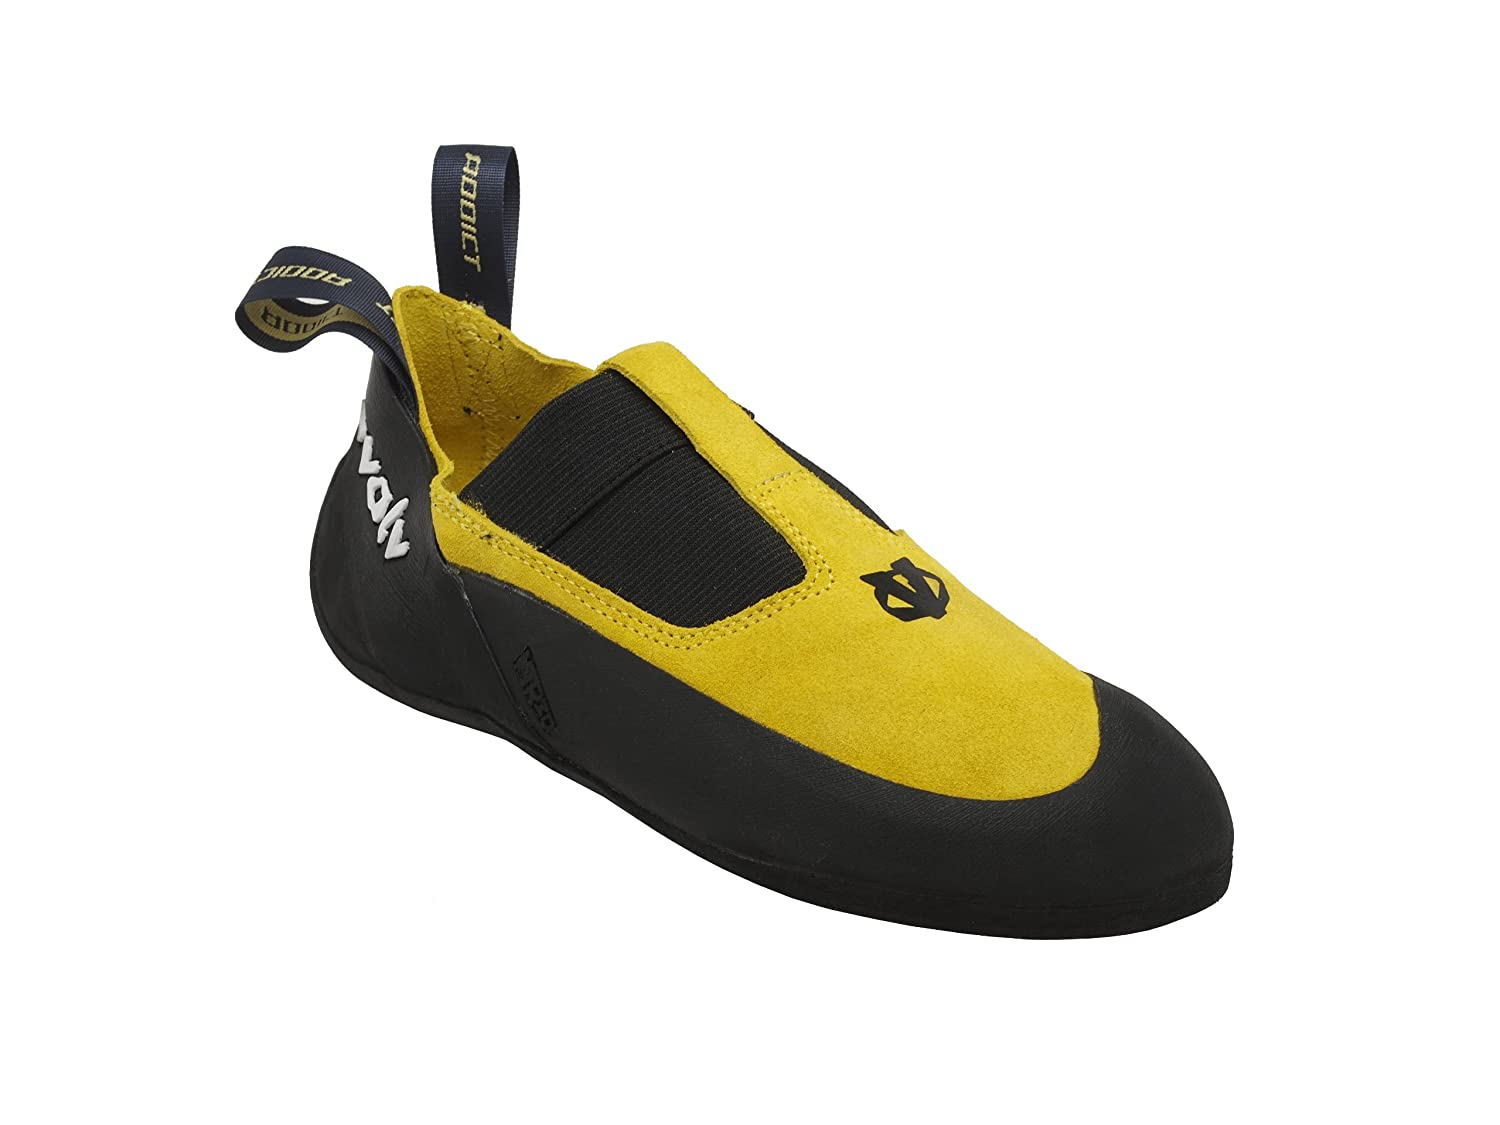 Evolv Addict Climbing Shoe B00E41S22Y 8.5 D(M) US|Yellow